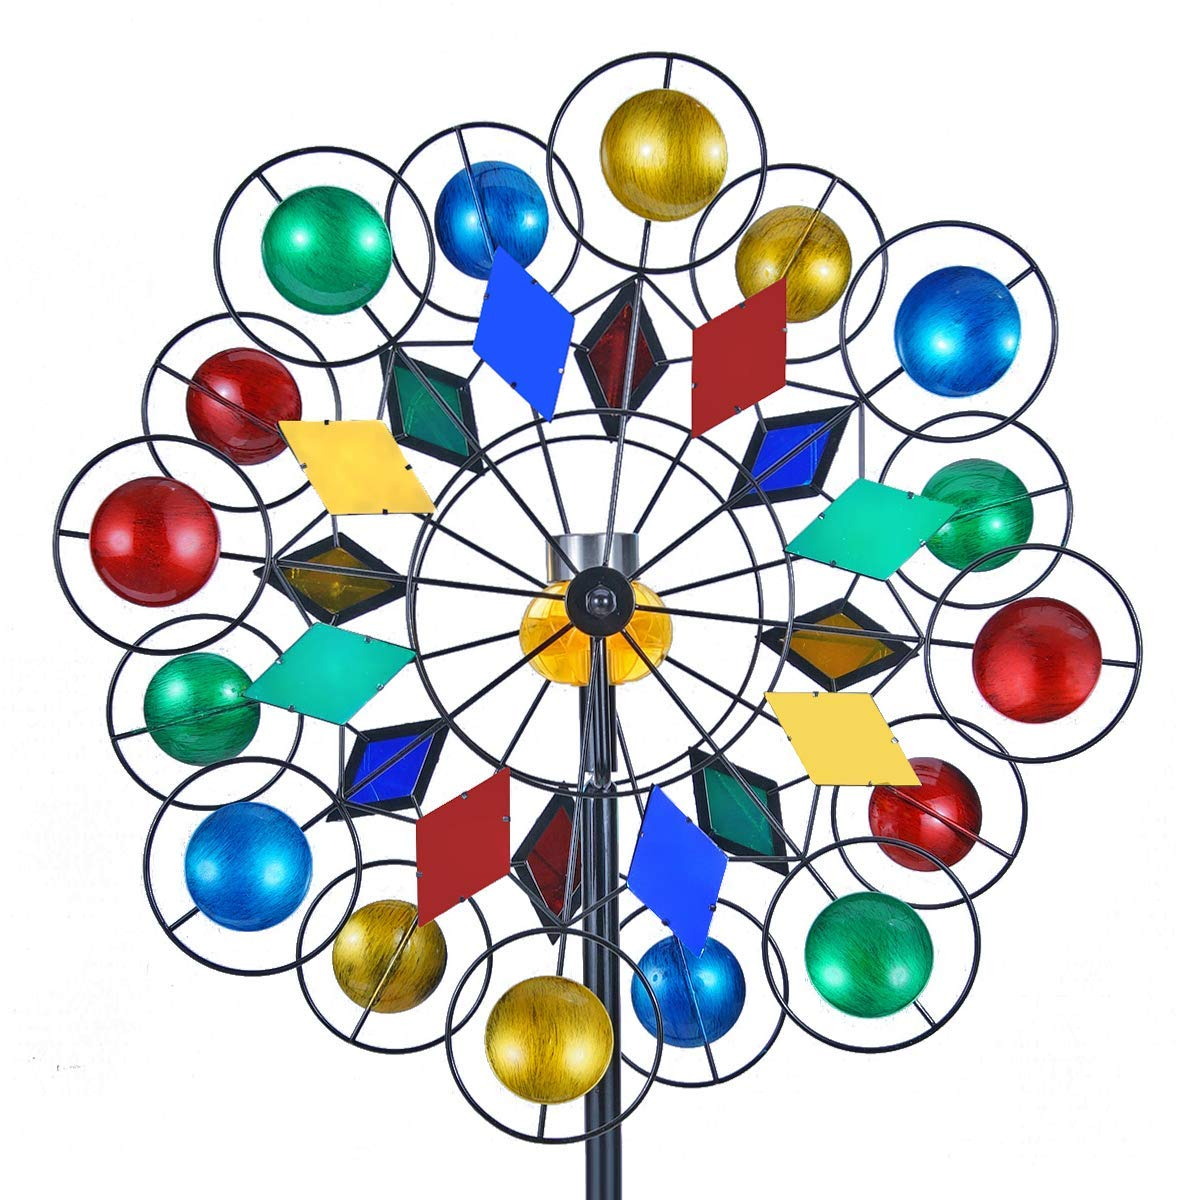 Solar Wind Spinner 3D Kinetic Wind Spinners Outdoor Metal Gardening Decorations with Multi-Color LED Lighting by Solar Powered Glass Ball with Lawn Ornament Wind Mills